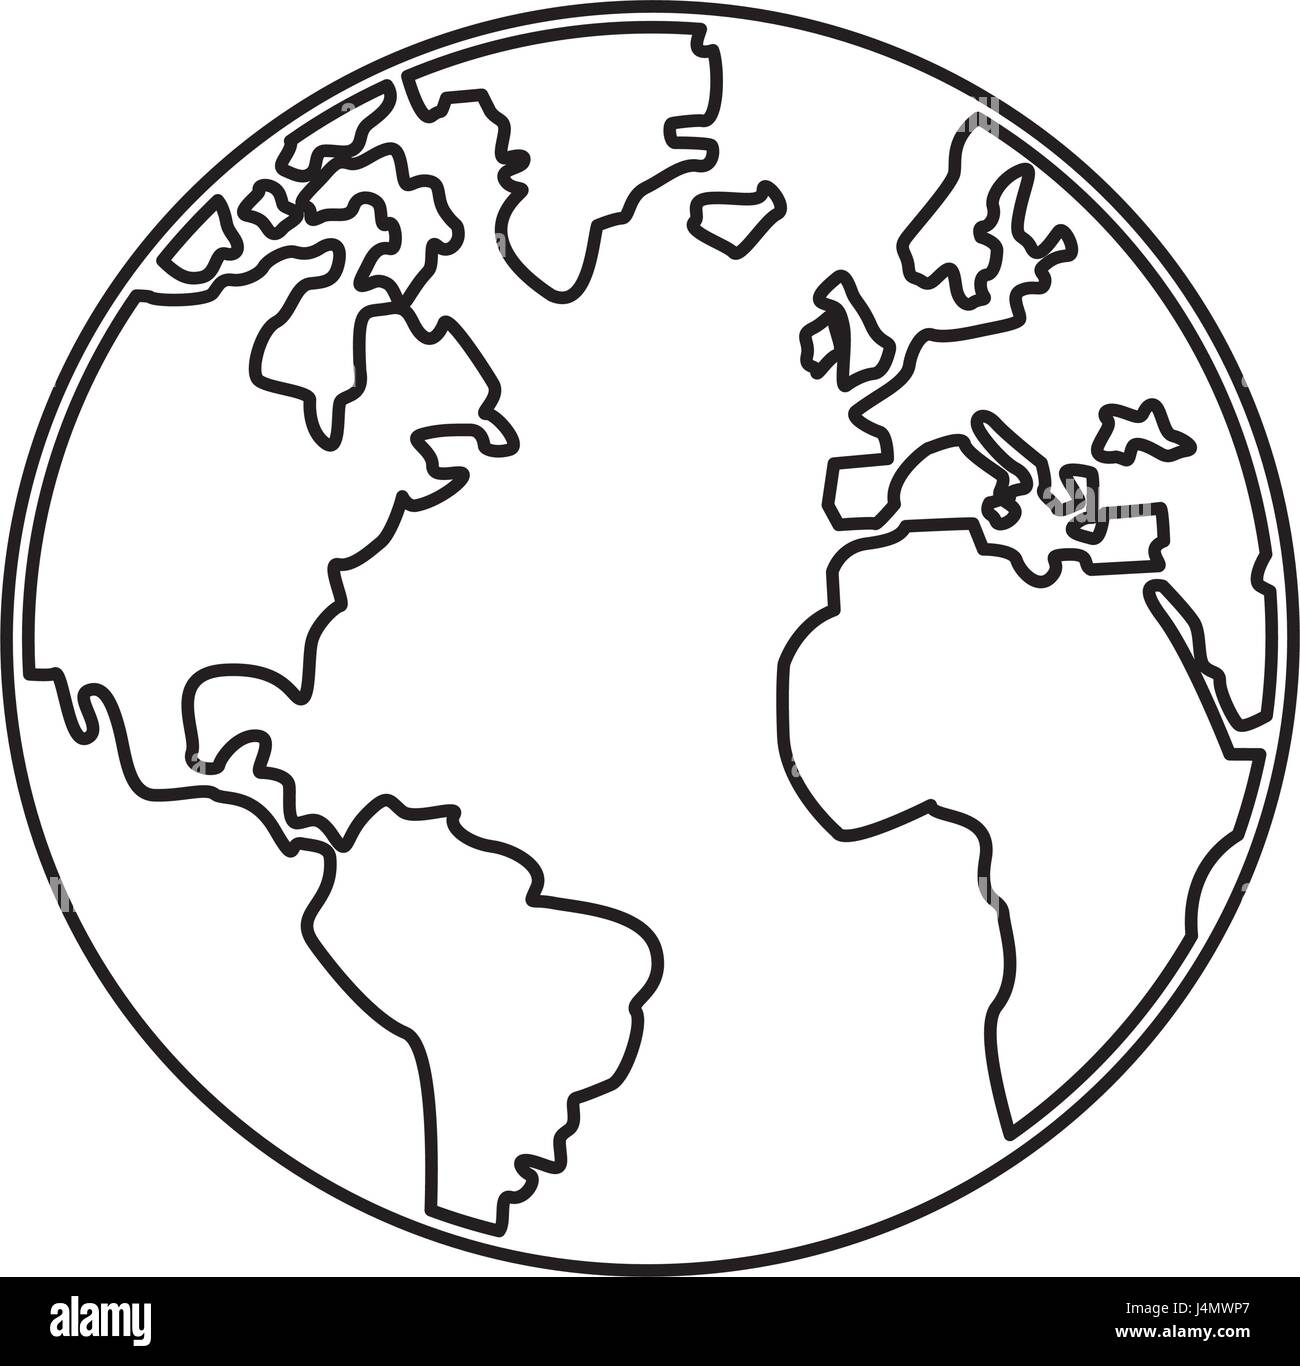 World map earth globes cartography continents outline stock vector world map earth globes cartography continents outline gumiabroncs Images